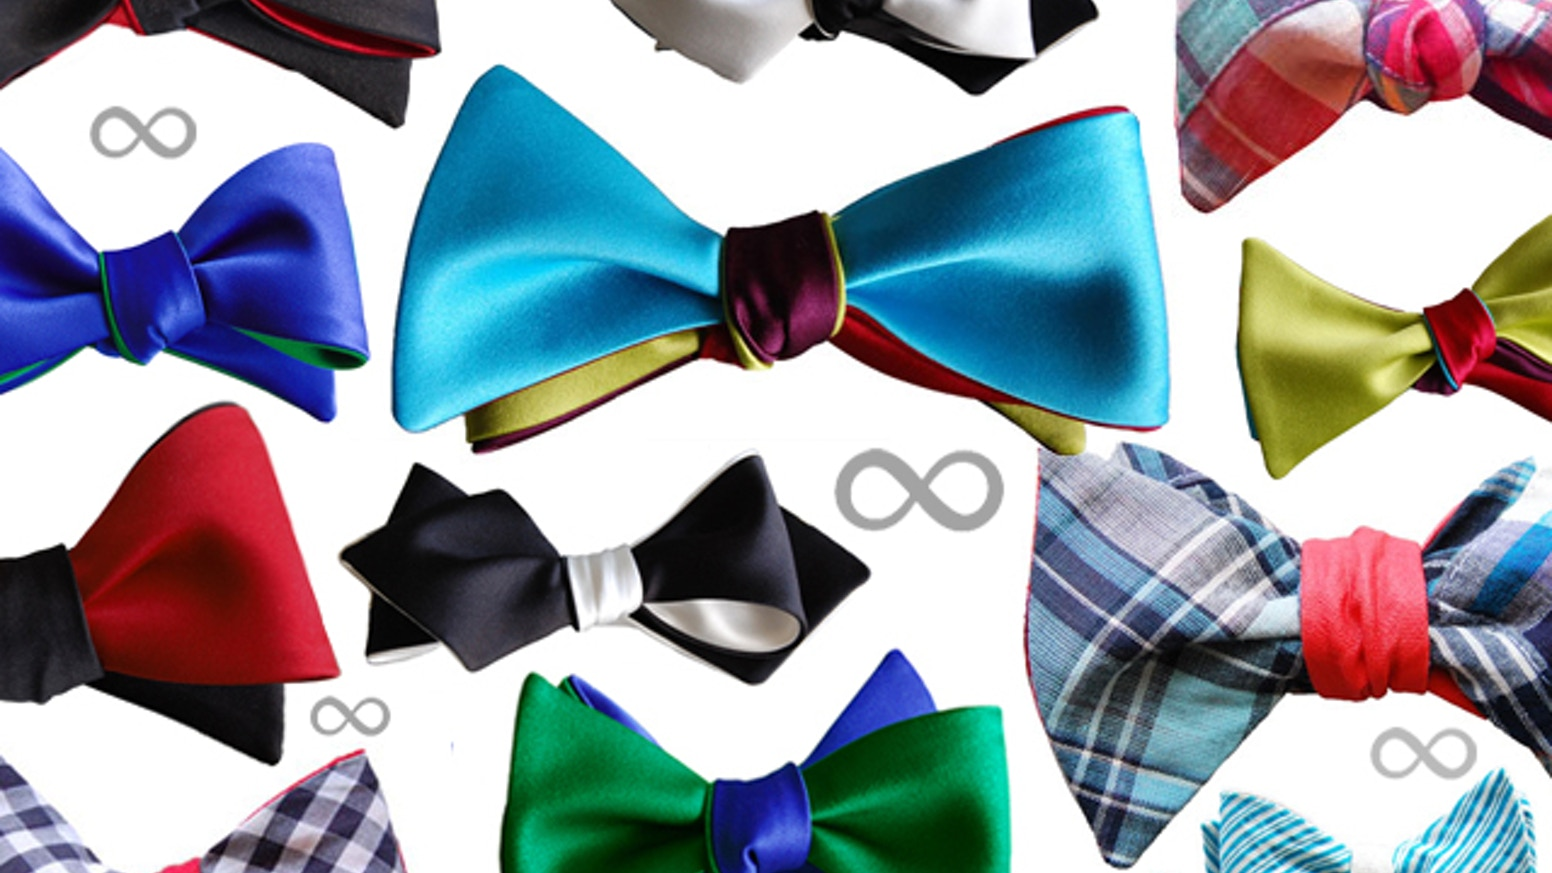 Bow ties are cool. You can create an infinite combinations with these modular bow ties designed by Knot Theory.